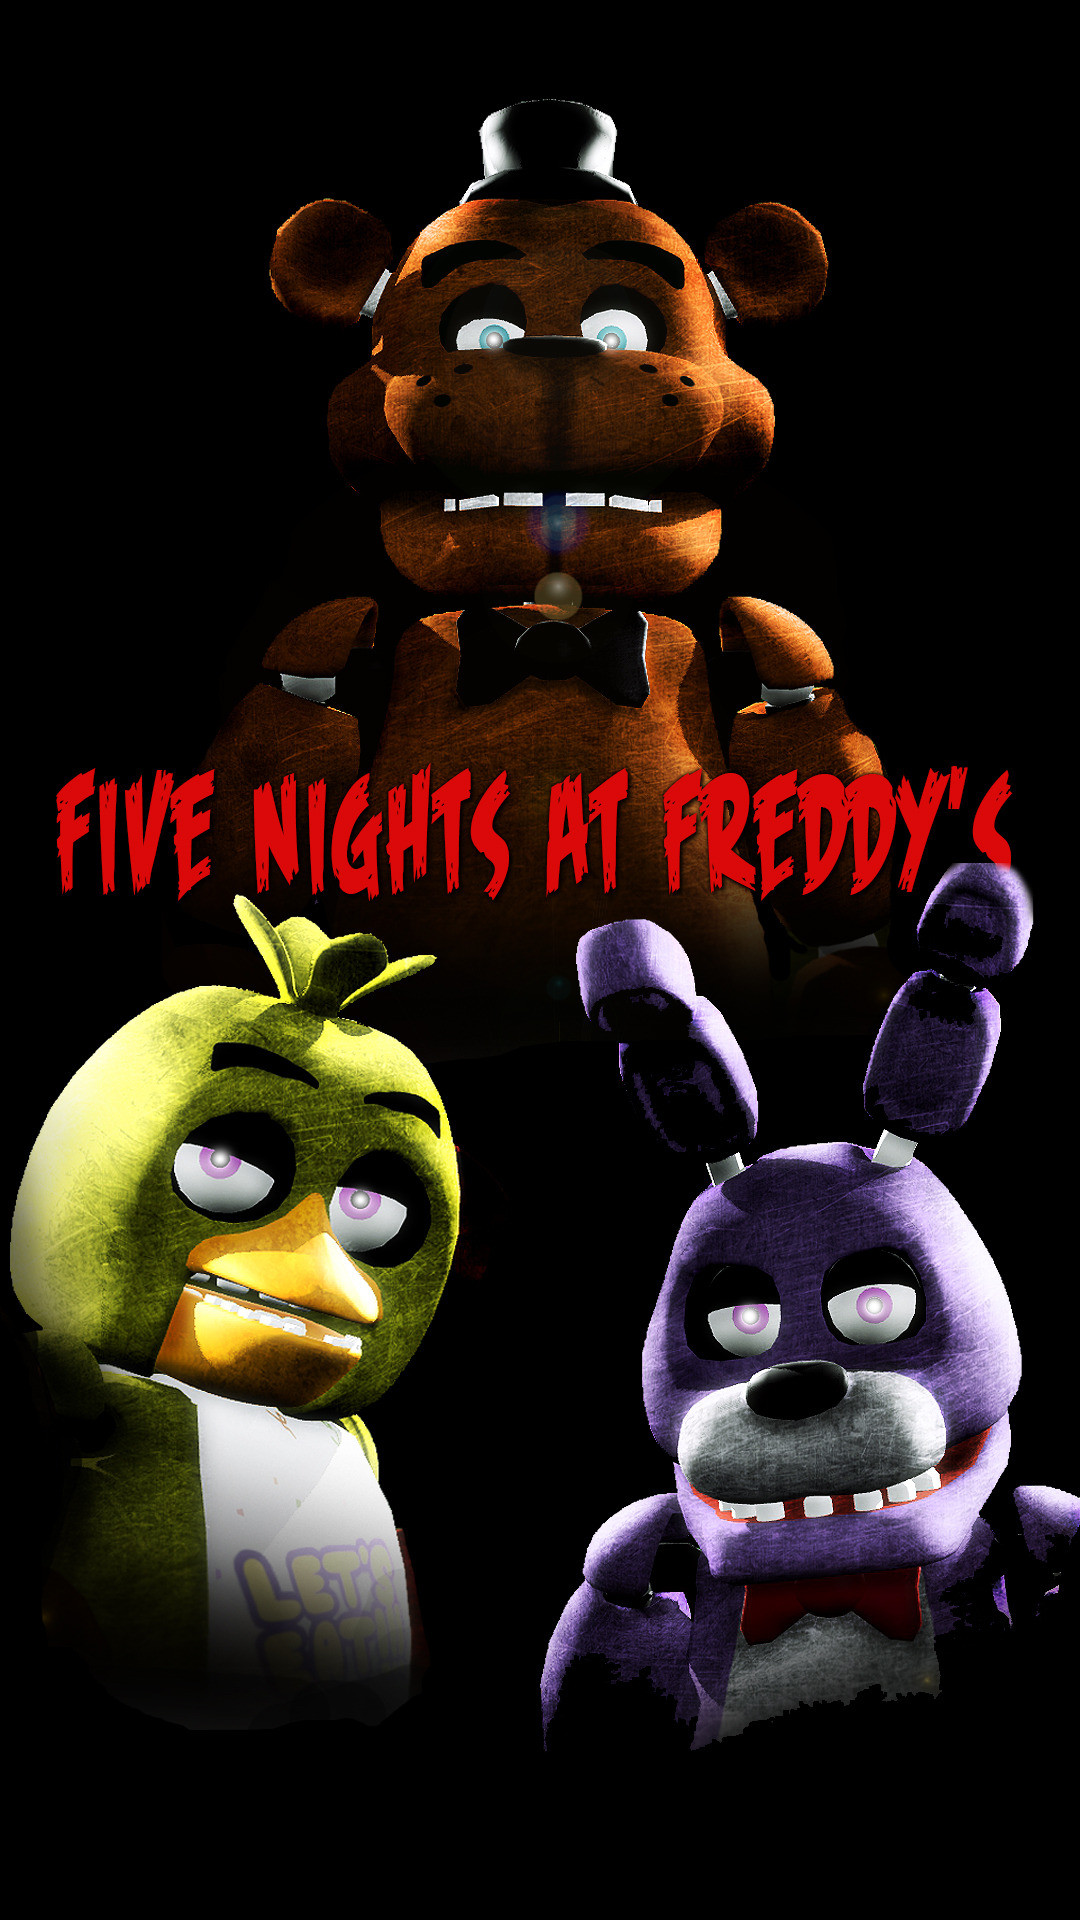 Five Nights at Freddy's Samsung Galaxy Note 3 wallpaper Resolution  [1080×1920] by: FioreRose